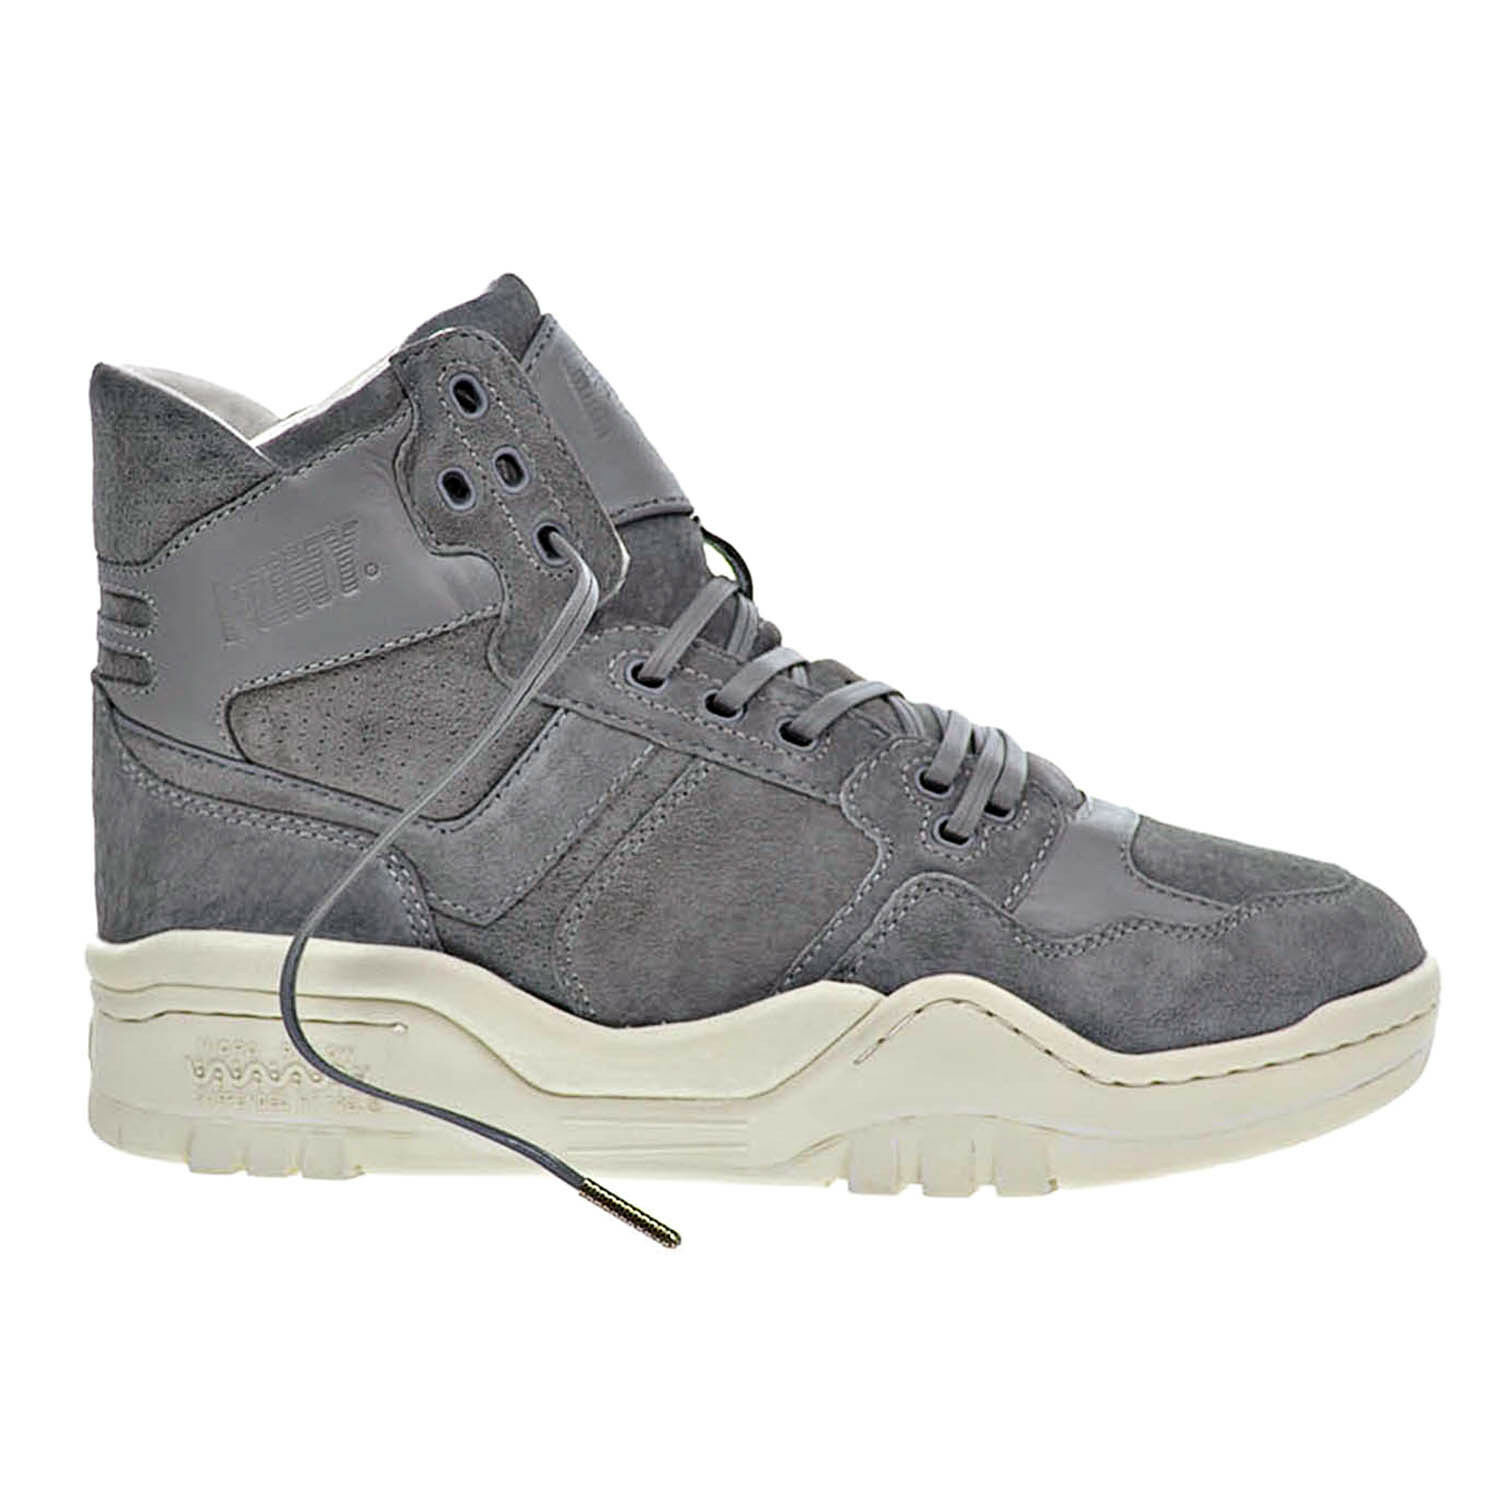 PONY Product Product Product Of New York M-110 Nubuck Uomo scarpe Cloud grigio 0710001-clog d2fbab